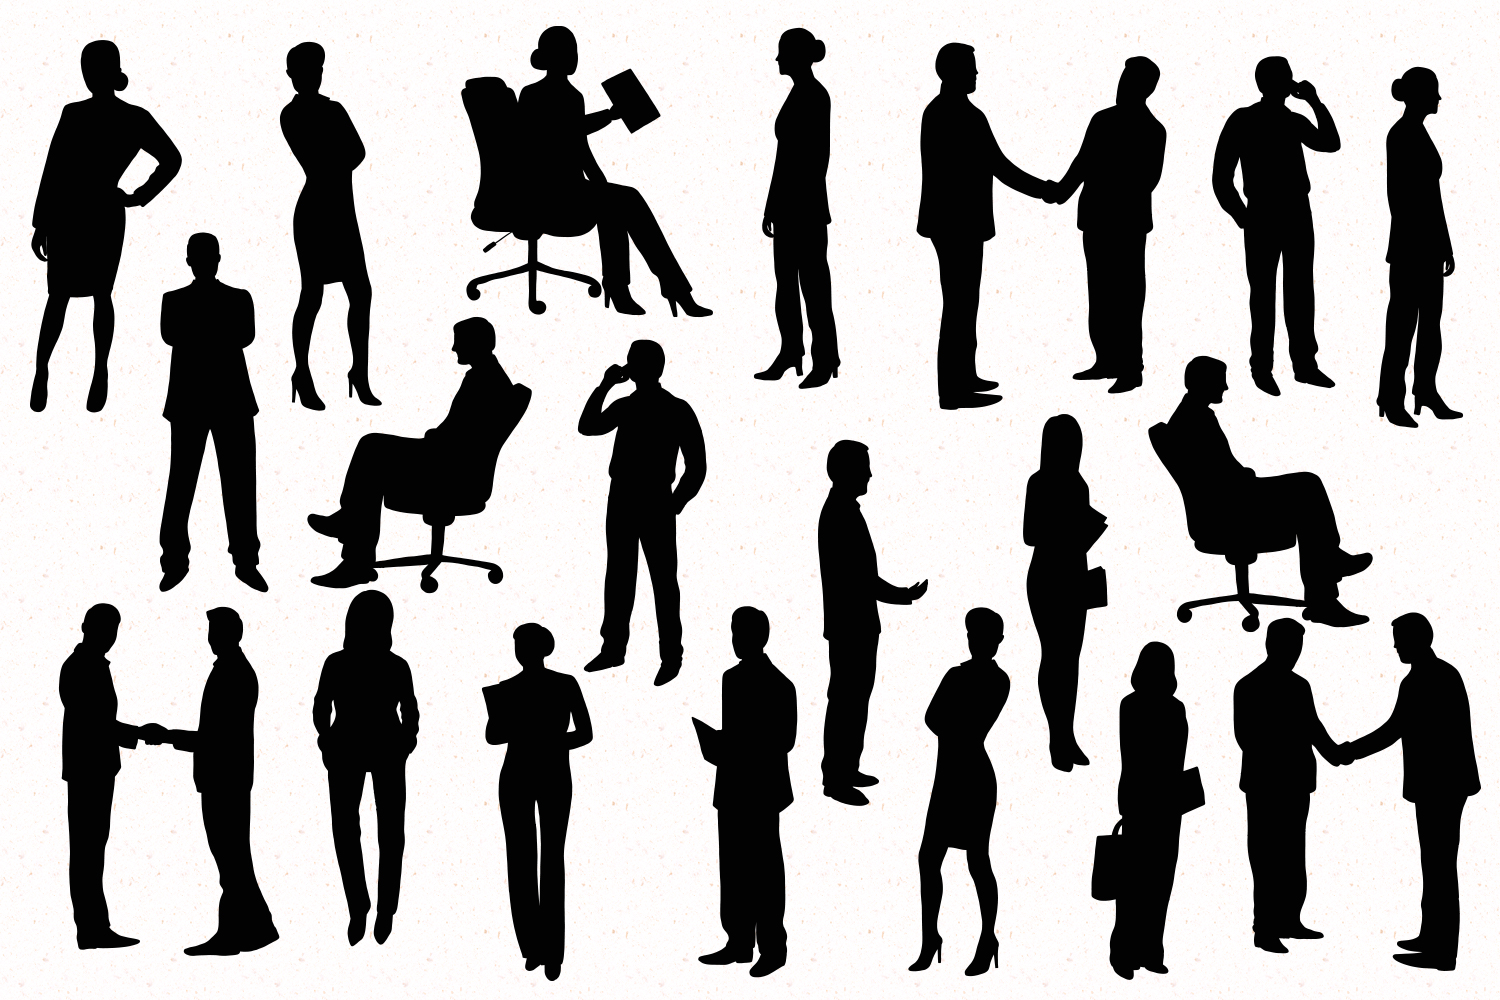 Business people silhouette example image 2